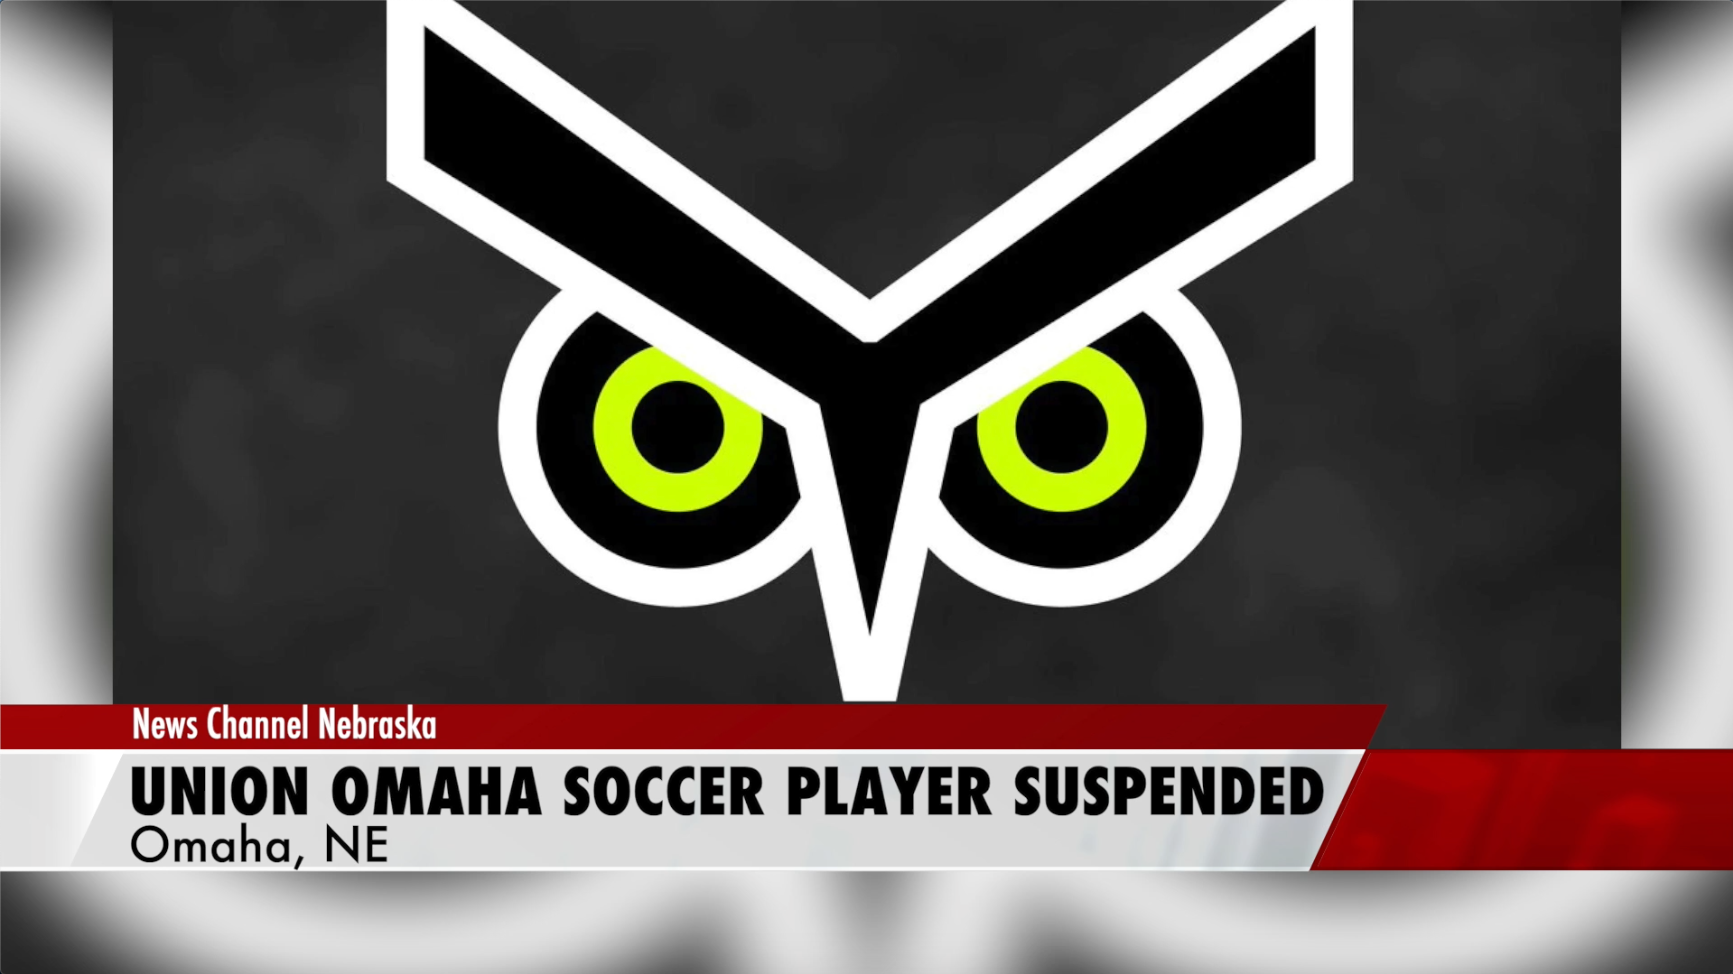 Professional Omaha soccer player suspended